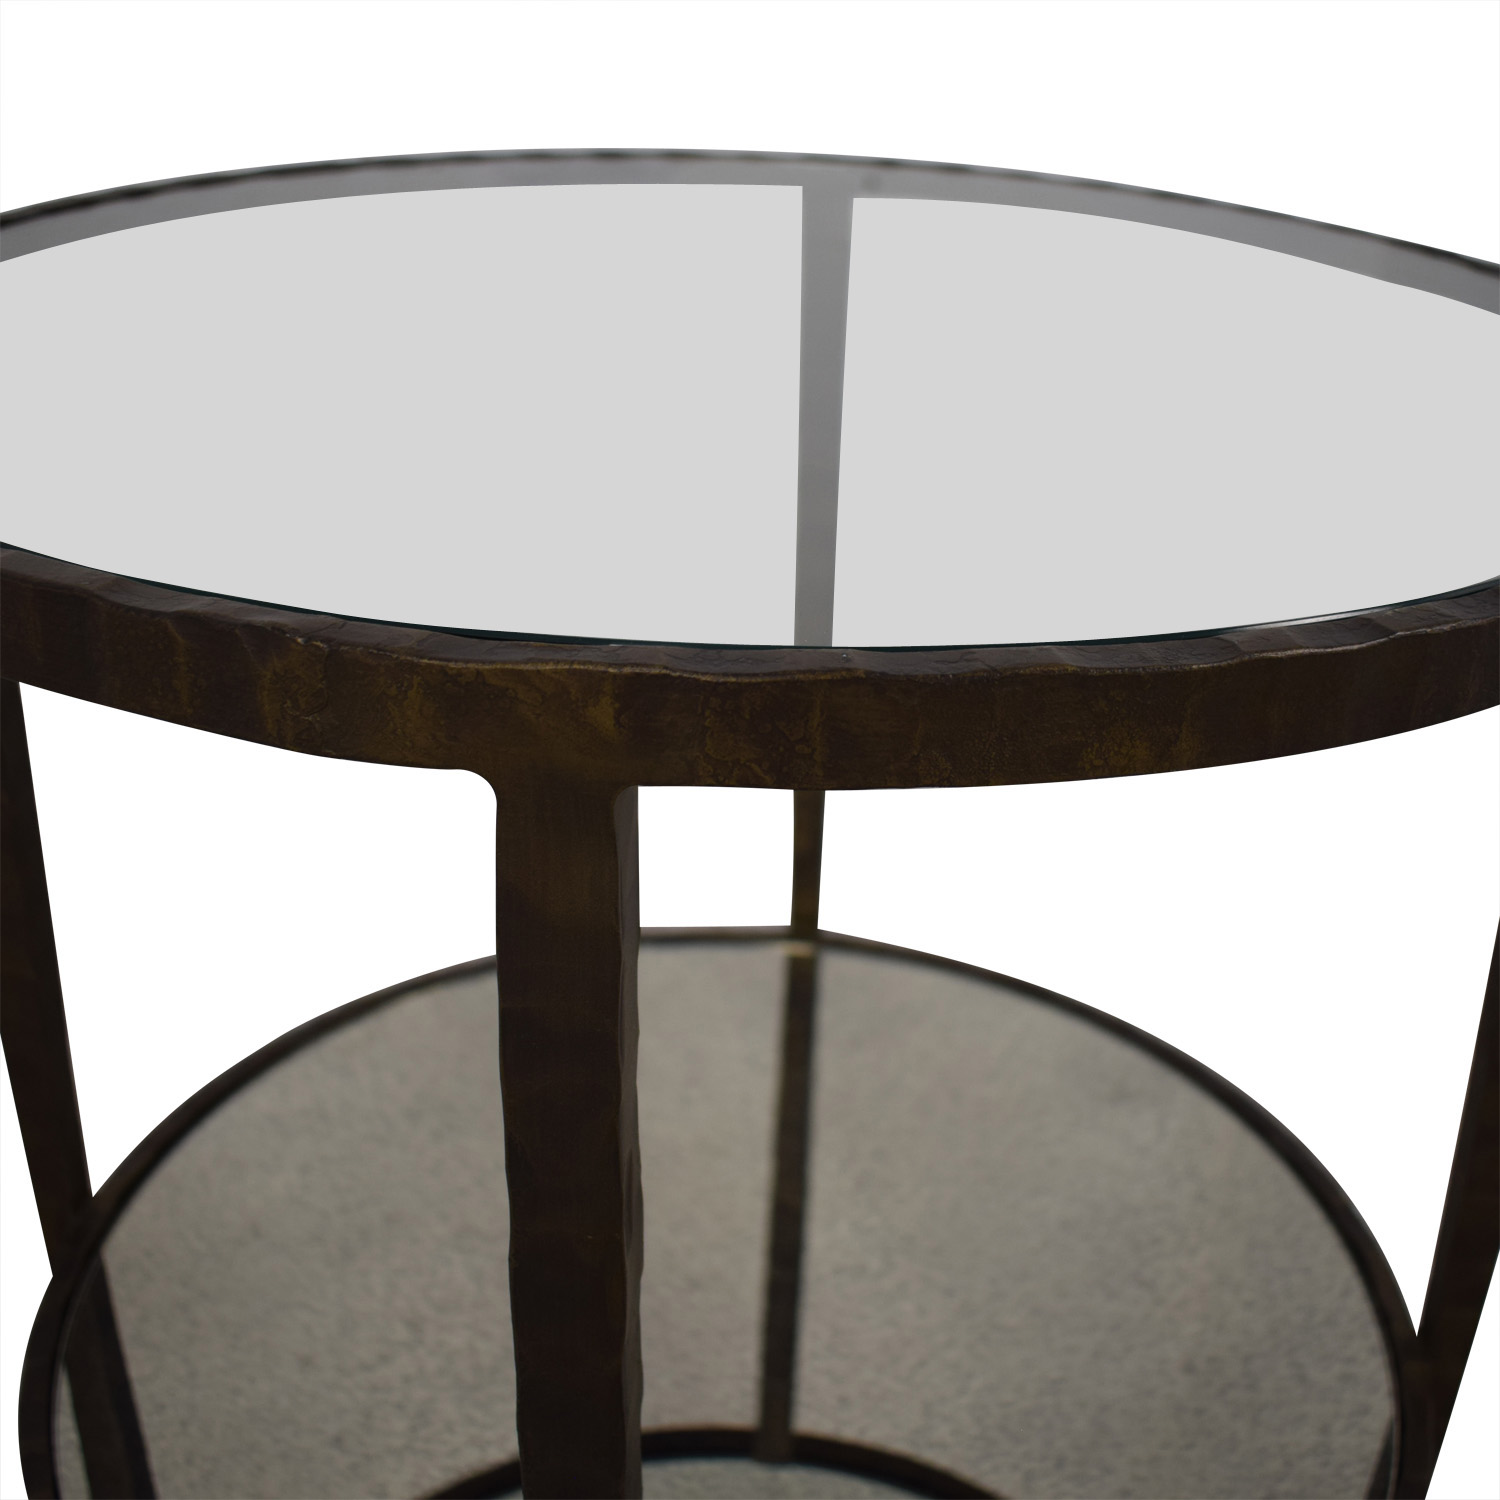 Crate & Barrel Crate & Barrel Clairemont Round Side Table discount